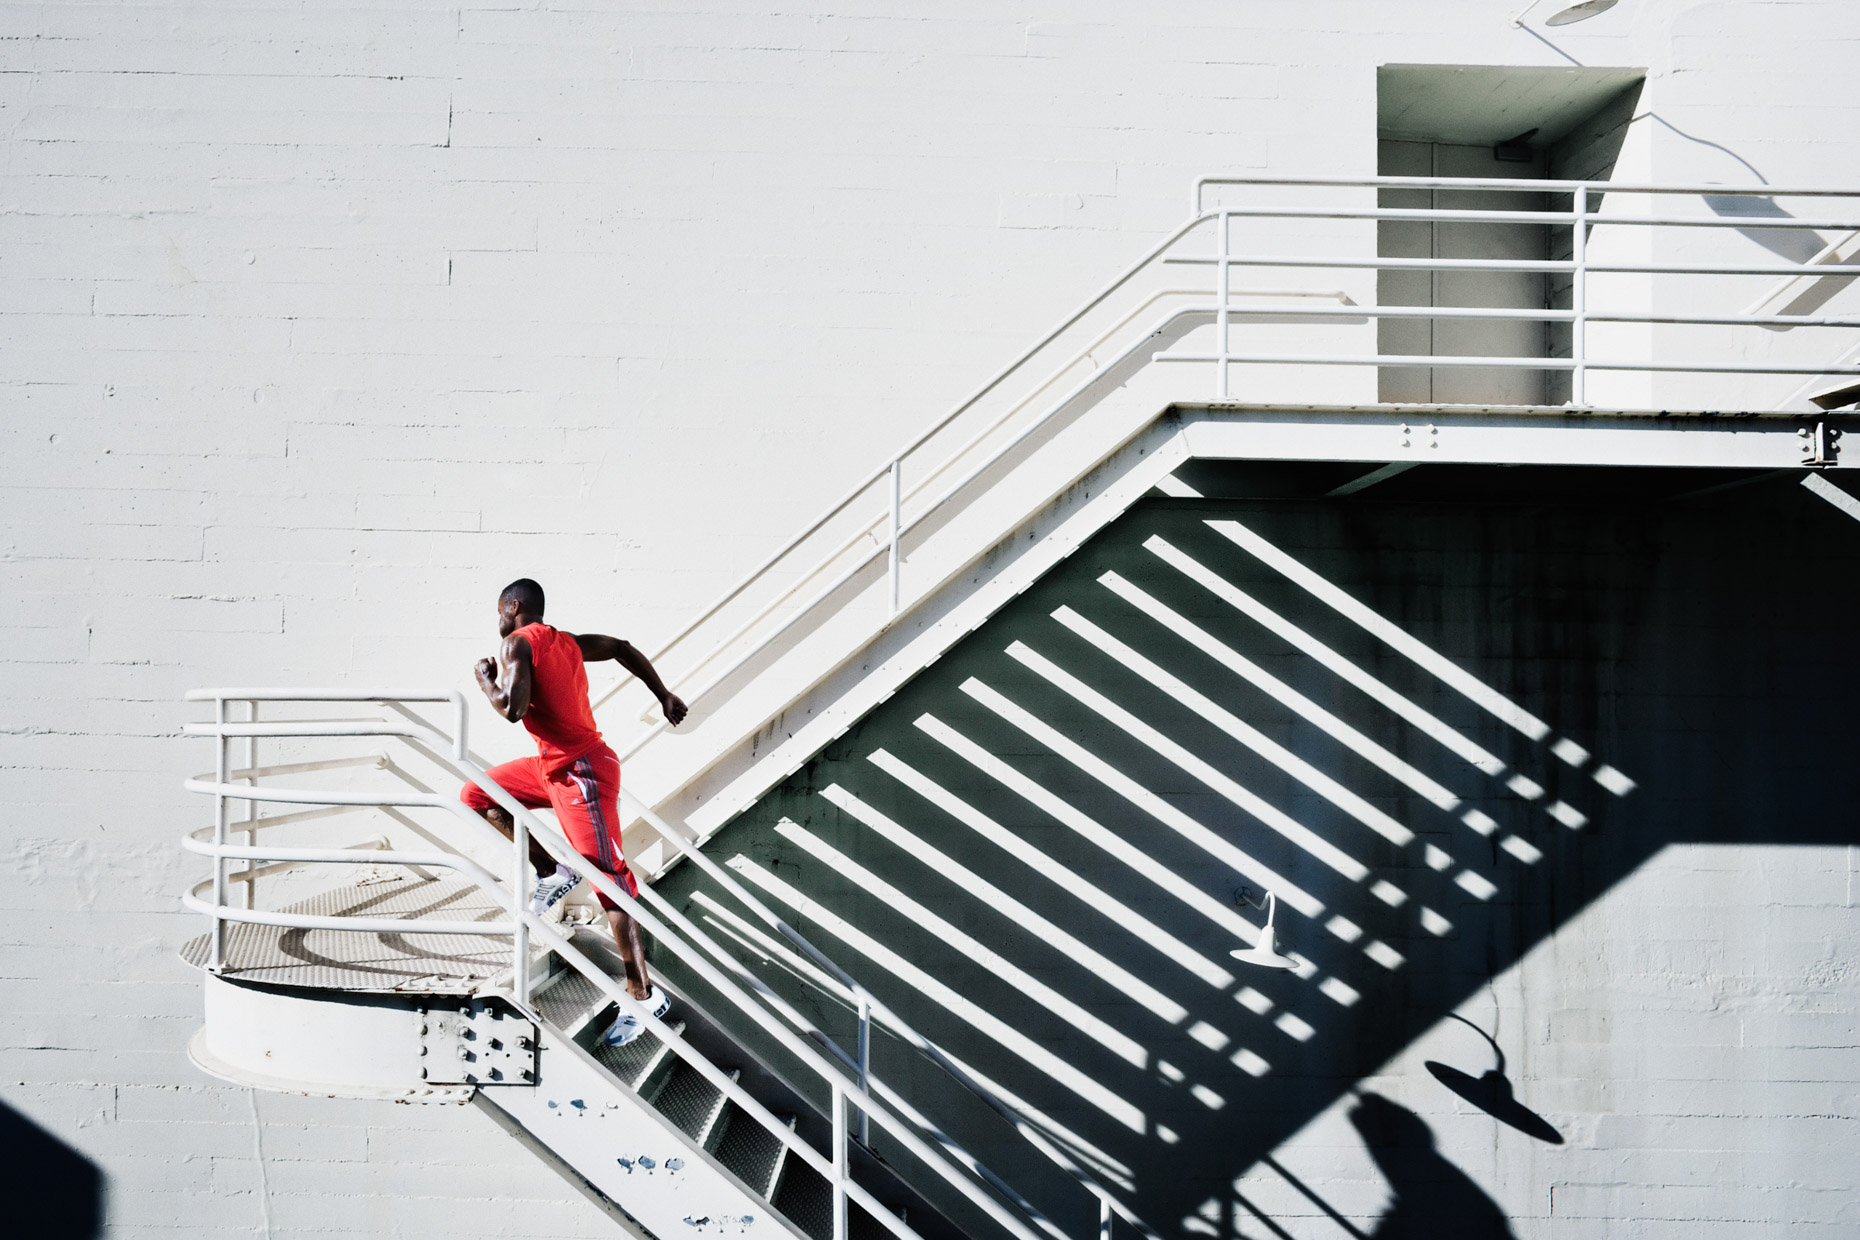 Urban running and training in San Francisco for adidas by dramatic fitness photographer Andy Batt